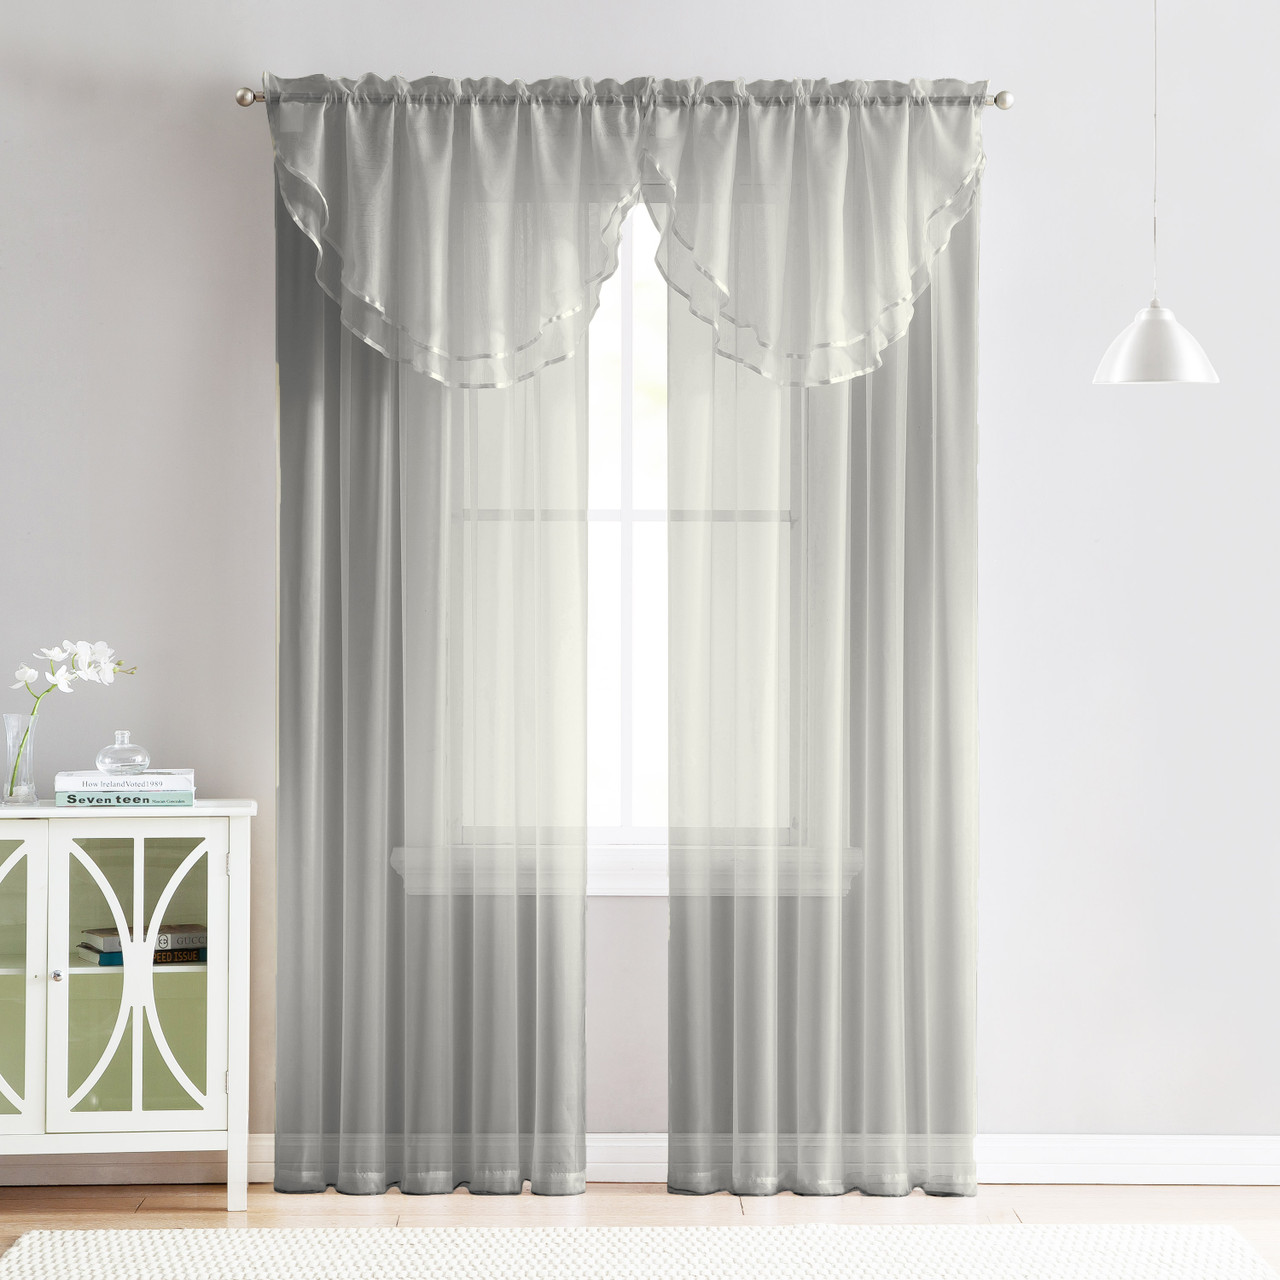 Curtains For Long Windows 4 Piece Sheer Window Curtain Set For Living Room Dining Room Bay Windows 2 Voile Valance Curtains And 2 Panels 84 In Long Silver